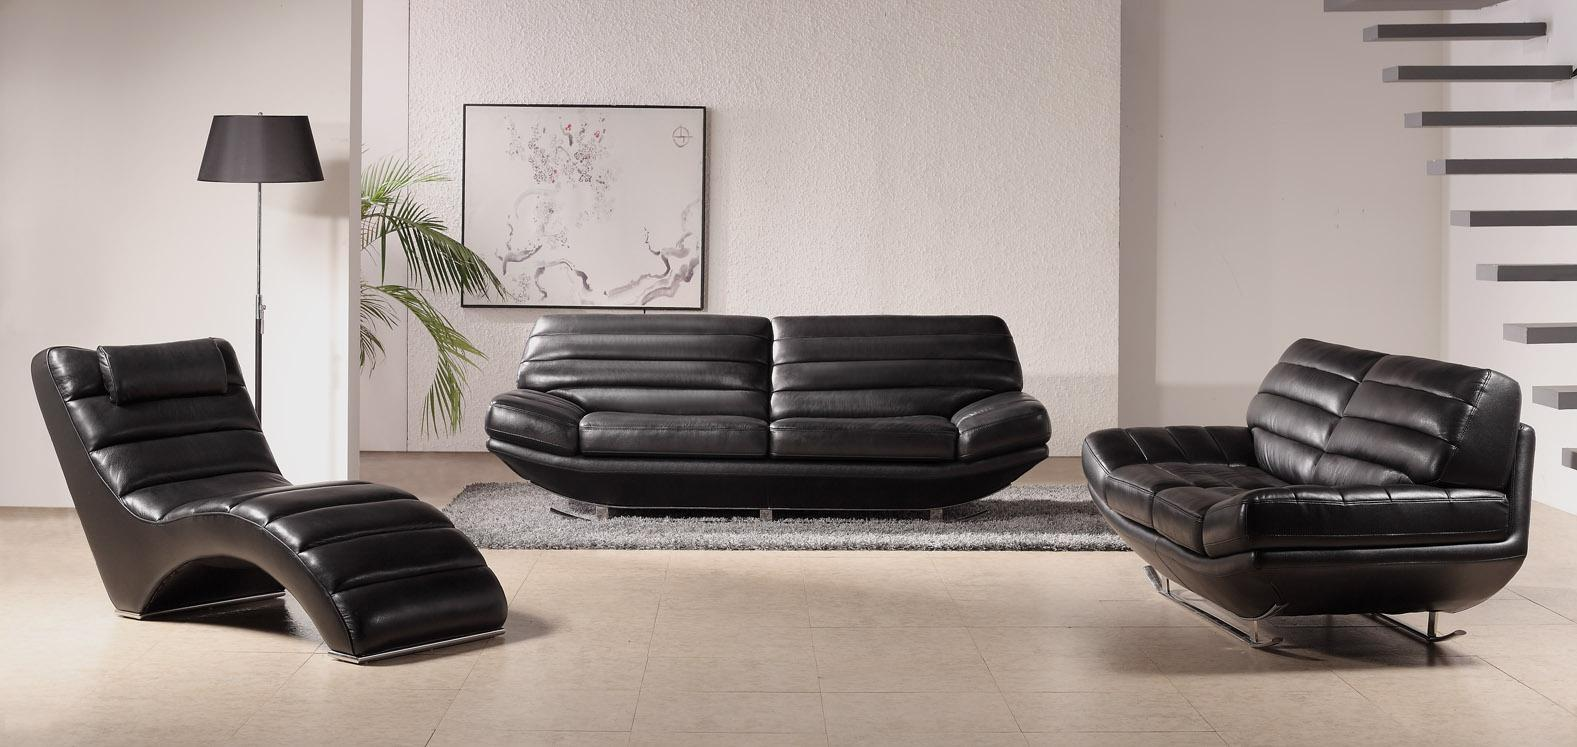 Know about types of couches and sofas my decorative for Black living room furniture